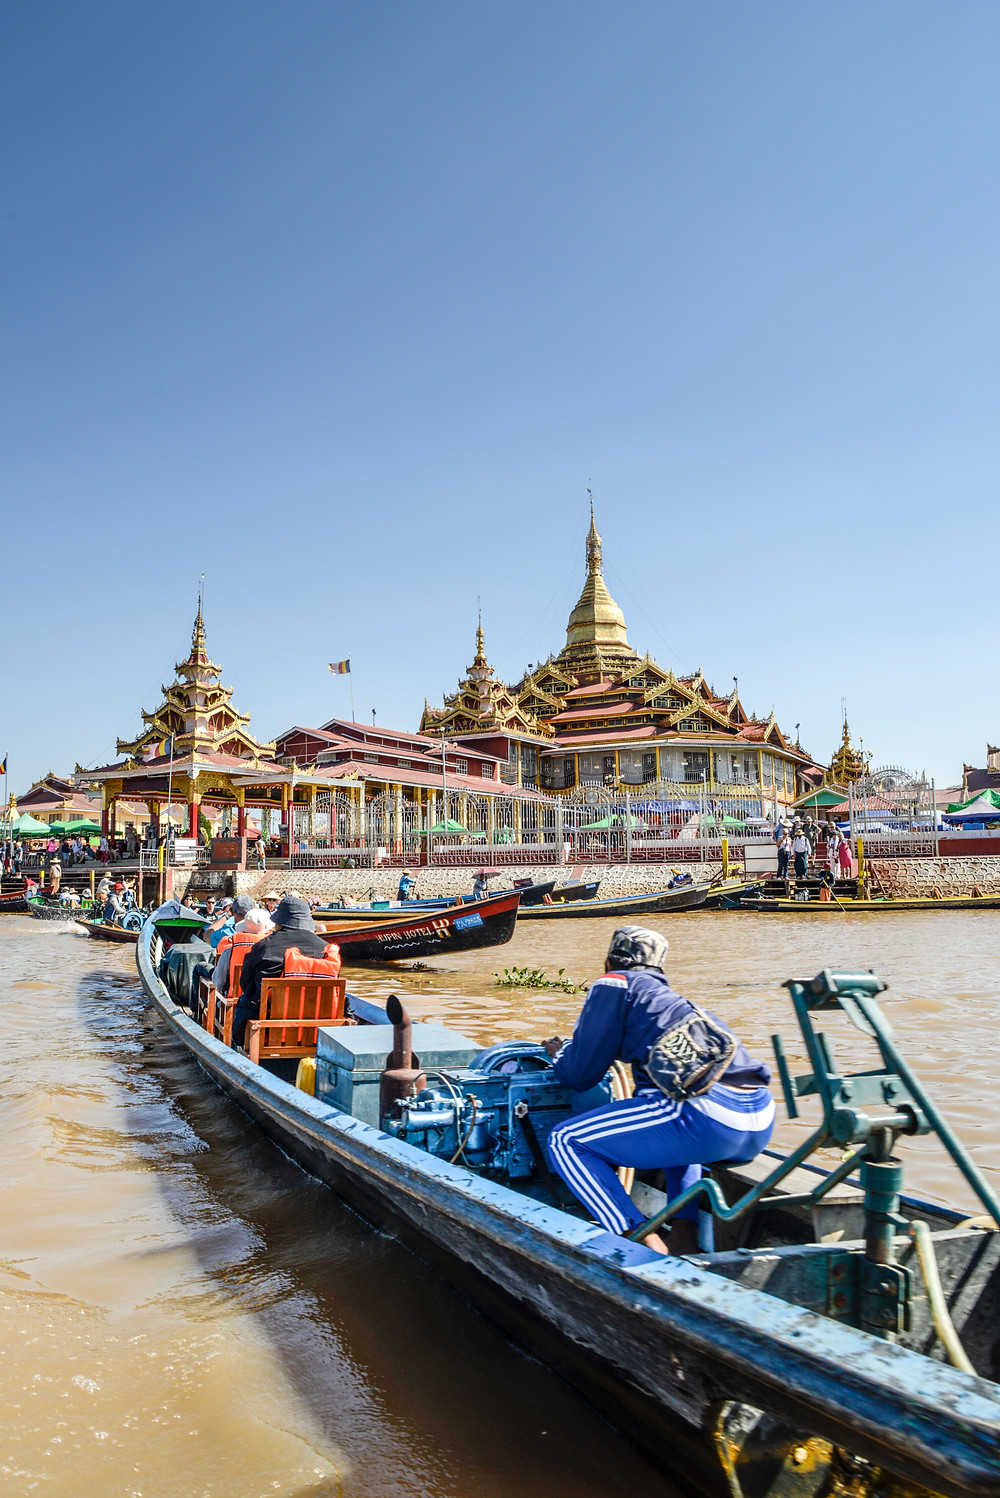 a temple surrounded by water at Inle Lake Myanmar